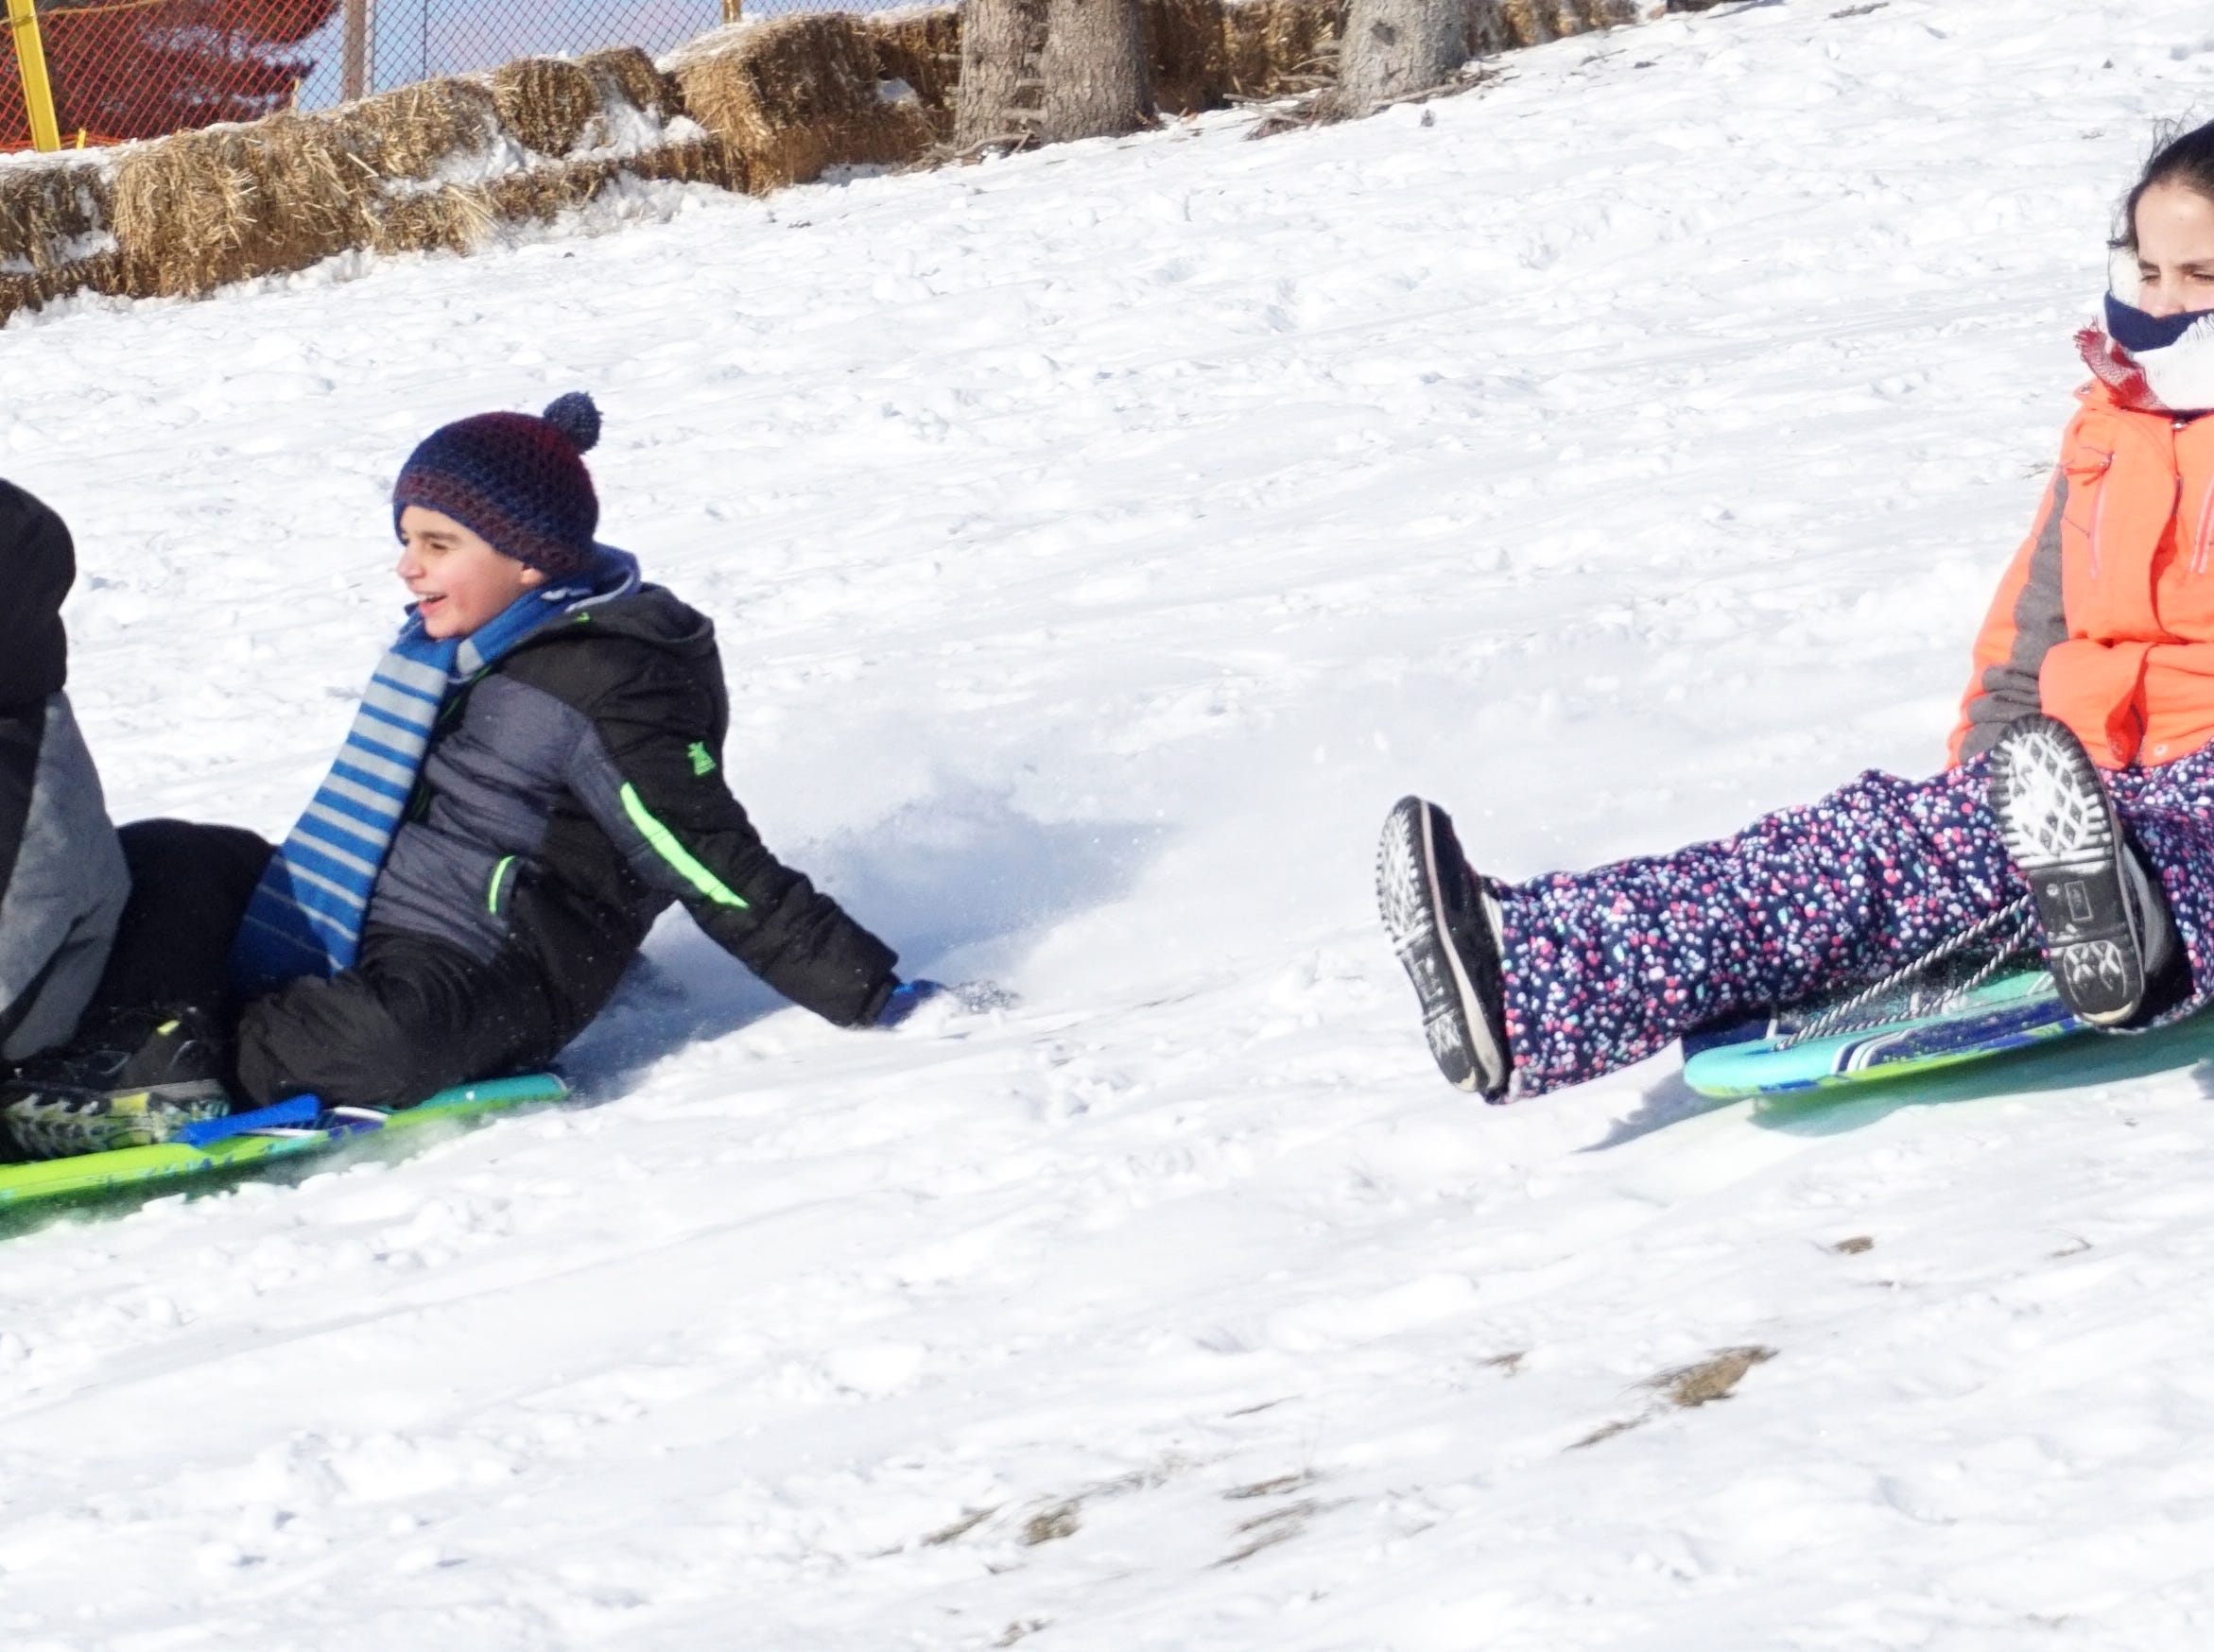 Siblings Thomas, 12, Mathhew, 9 and Theresa Keriko, 9, zip down the hill at the Farmington Public Schools building off Shiawasee on Jan. 31. The kids were there with their mother Dena - and the only ones at that time brave enough to take on the chill of that afternoon.